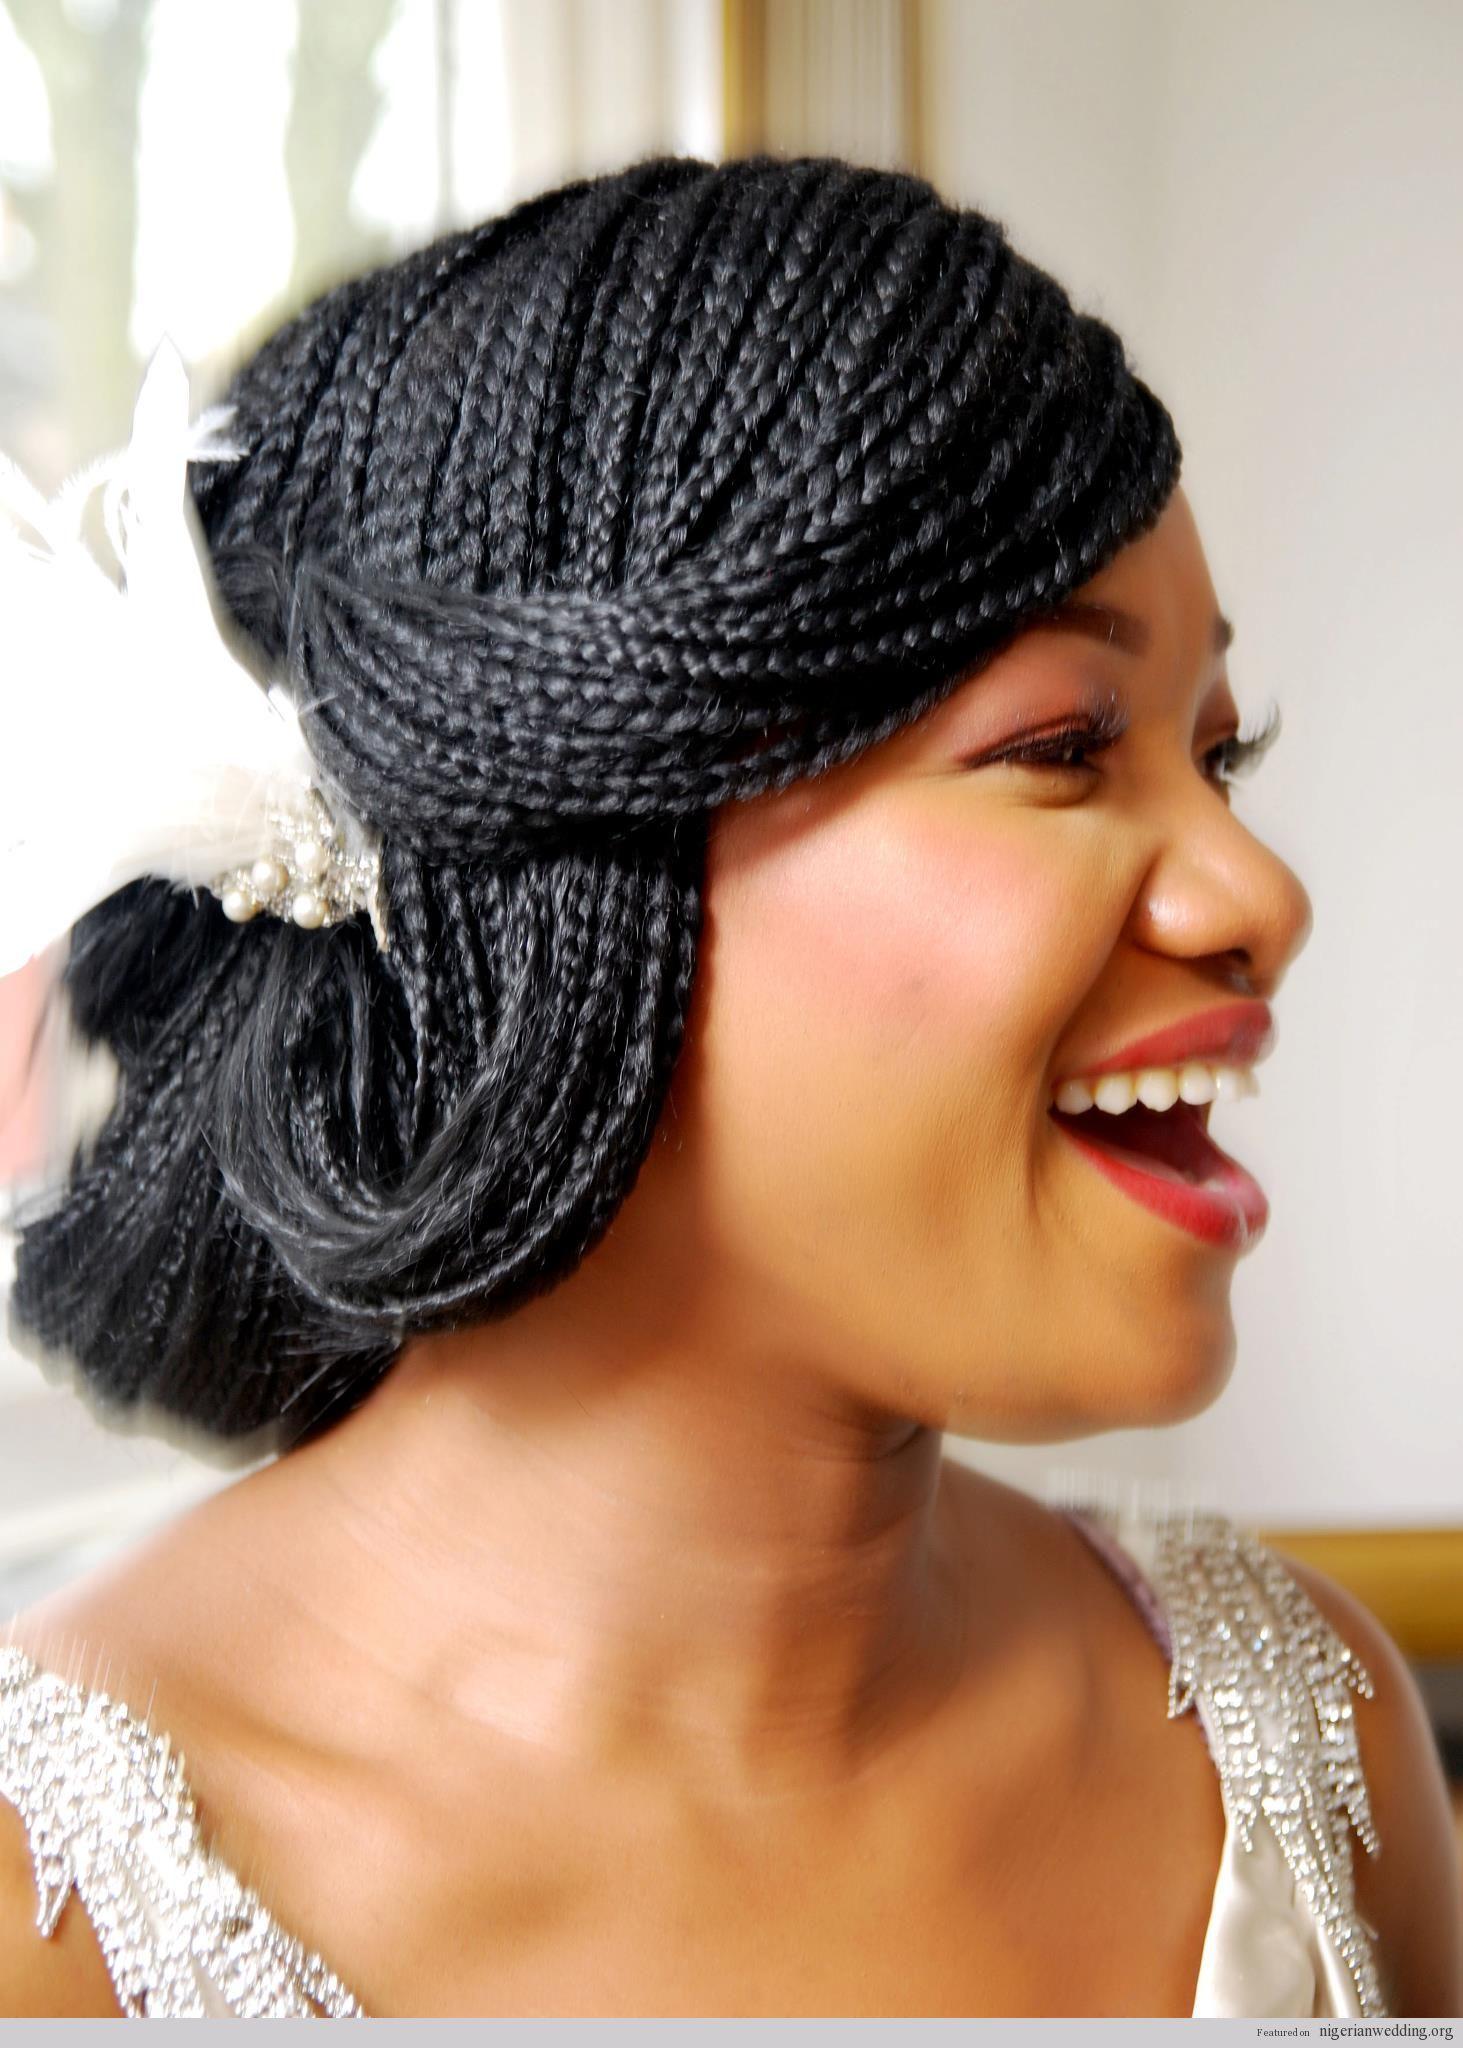 25 Gorgeous Bridal Hairstyles For Nigerian Brides By The Very Talented Mua Kemi Braided Hairstyles For Wedding Micro Braids Hairstyles Black Wedding Hairstyles